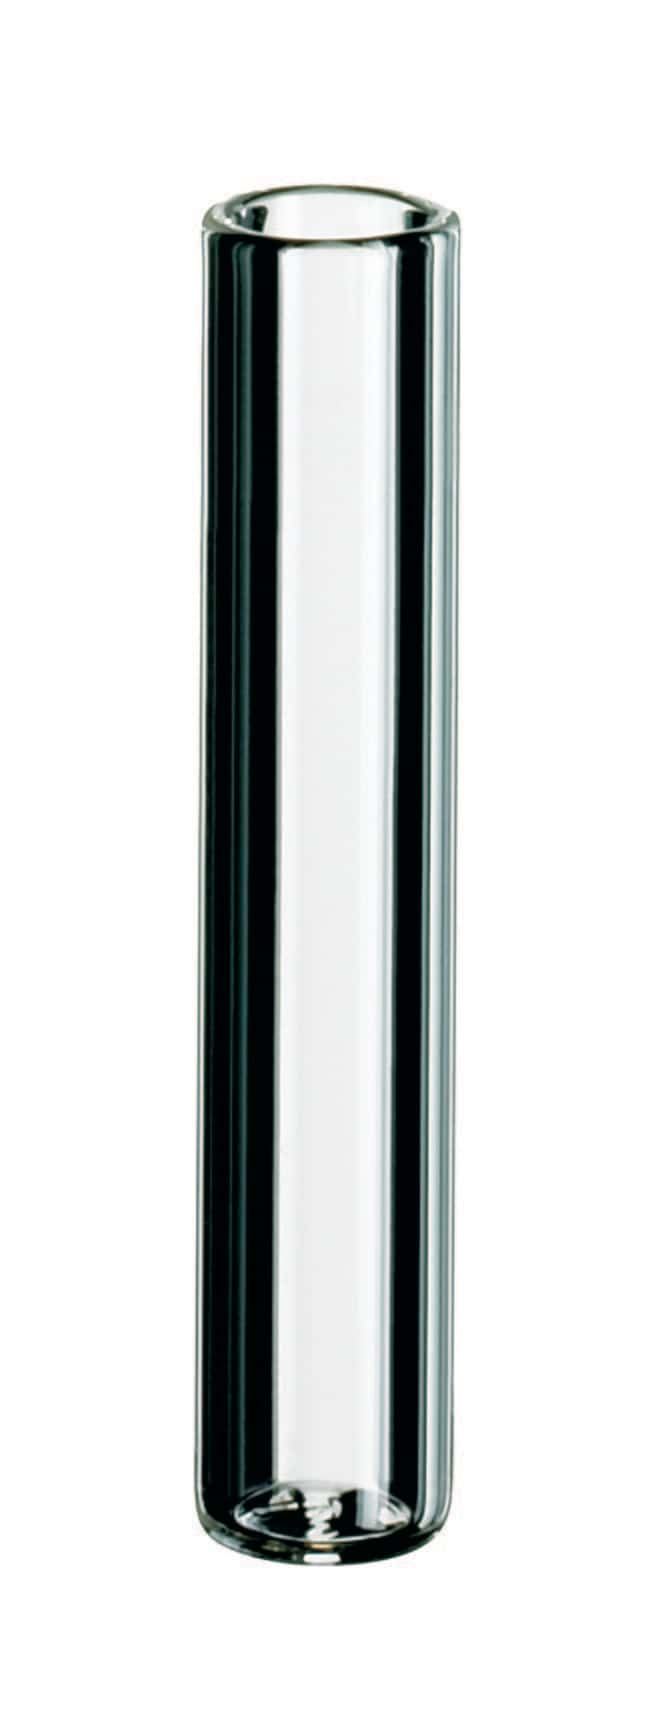 Fisherbrand&trade;&nbsp;Micro-Insert, Clear Glass, for Wide Opening Vial conical,0,2 mL Volume,<8 µL residual volume,31 mm height Fisherbrand&trade;&nbsp;Micro-Insert, Clear Glass, for Wide Opening Vial